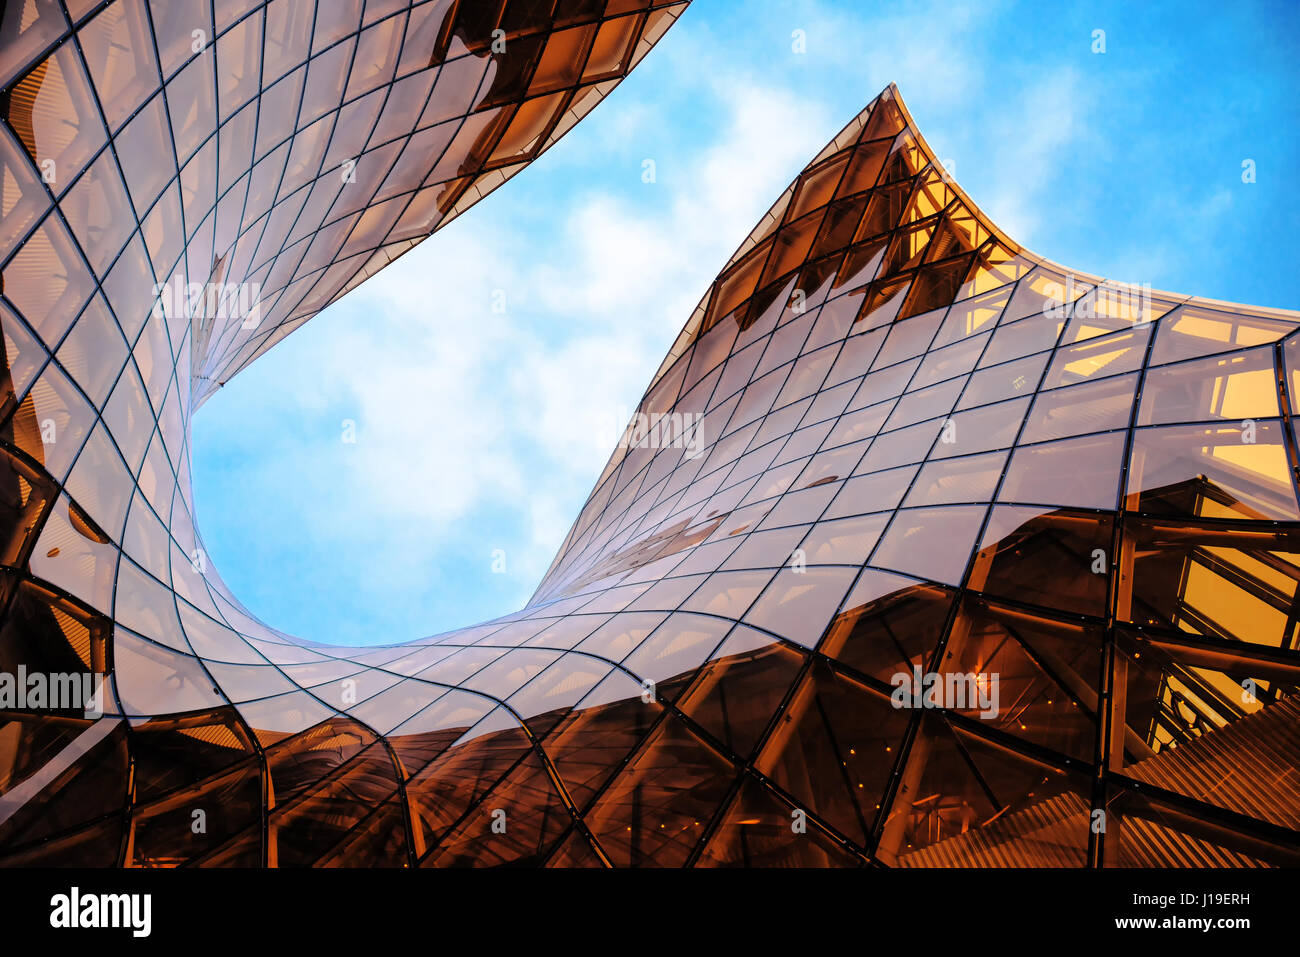 MALMO, SWEDEN - MARCH 08, 2017: Malmo's Emporia Shopping Center modern glass facade. The largest shopping mall - Stock Image